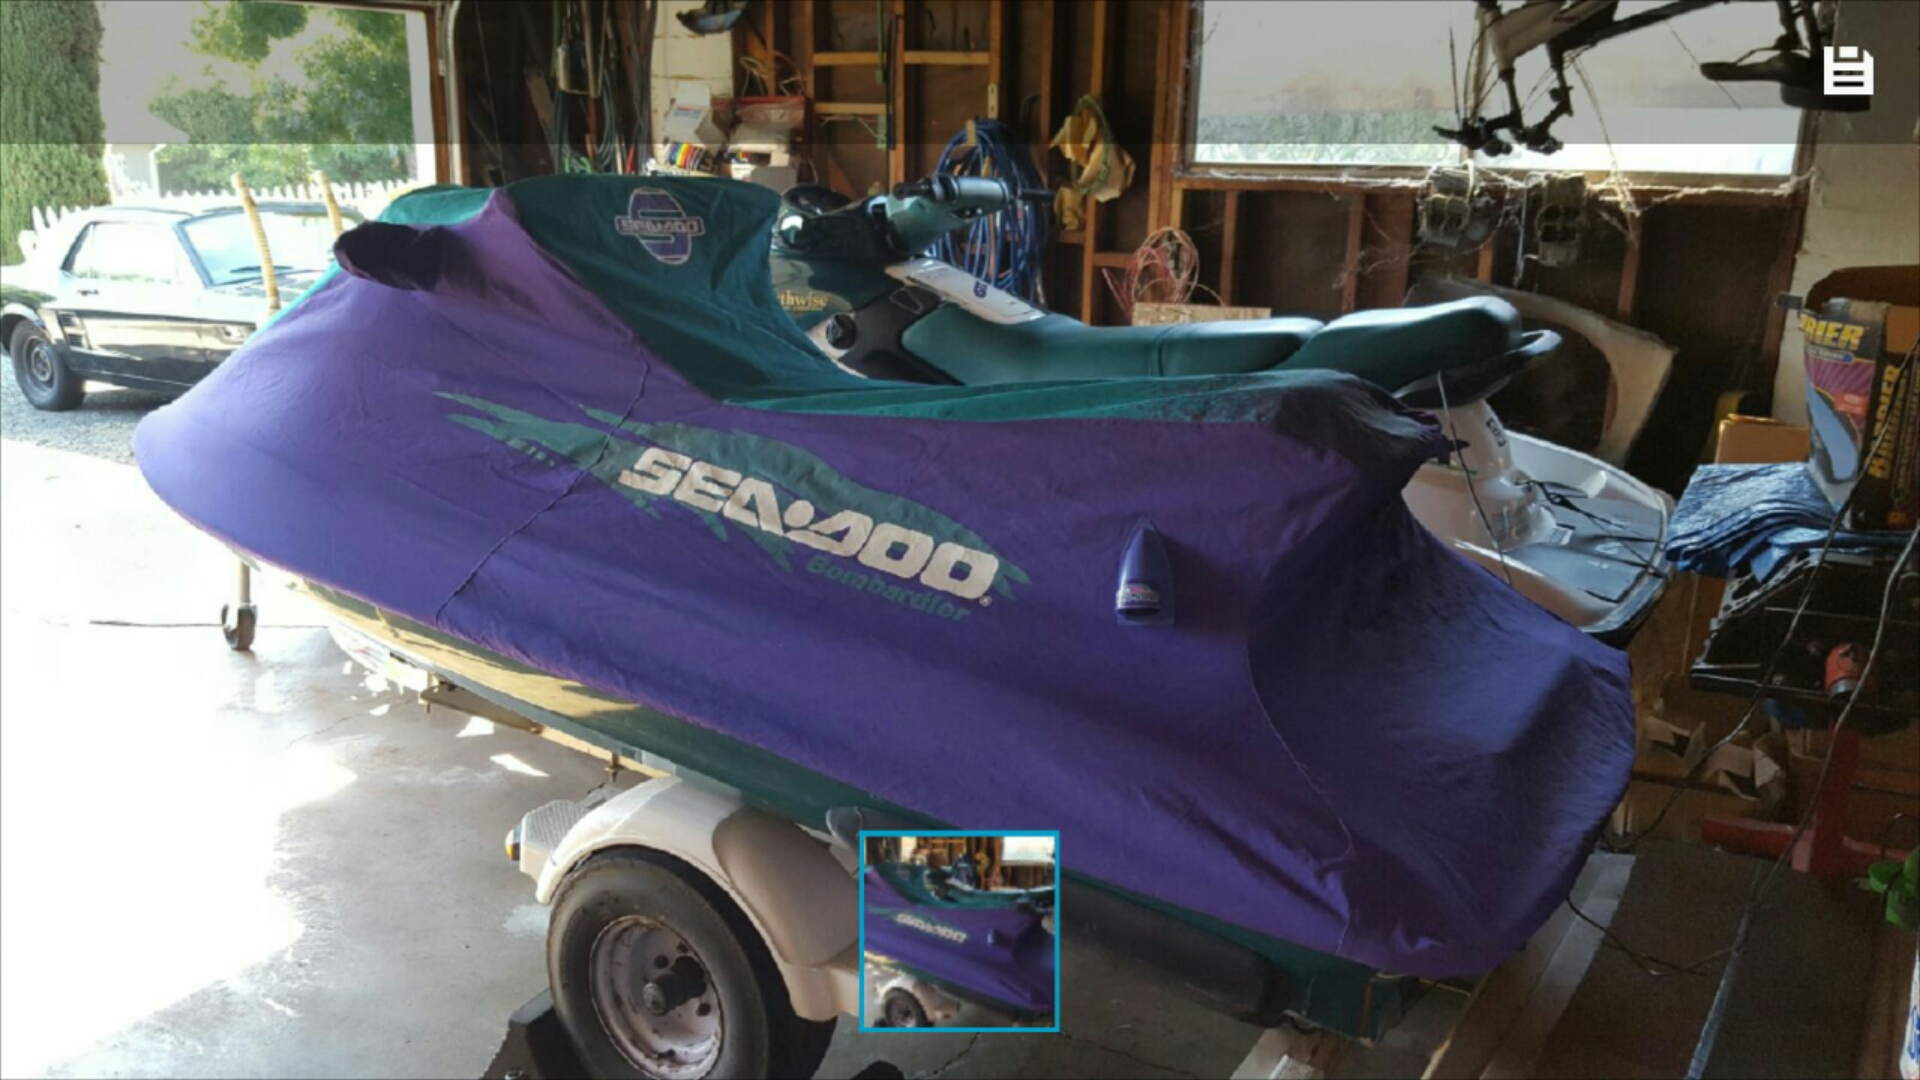 Seadoo 1997 GTX W/RUNNER COVER